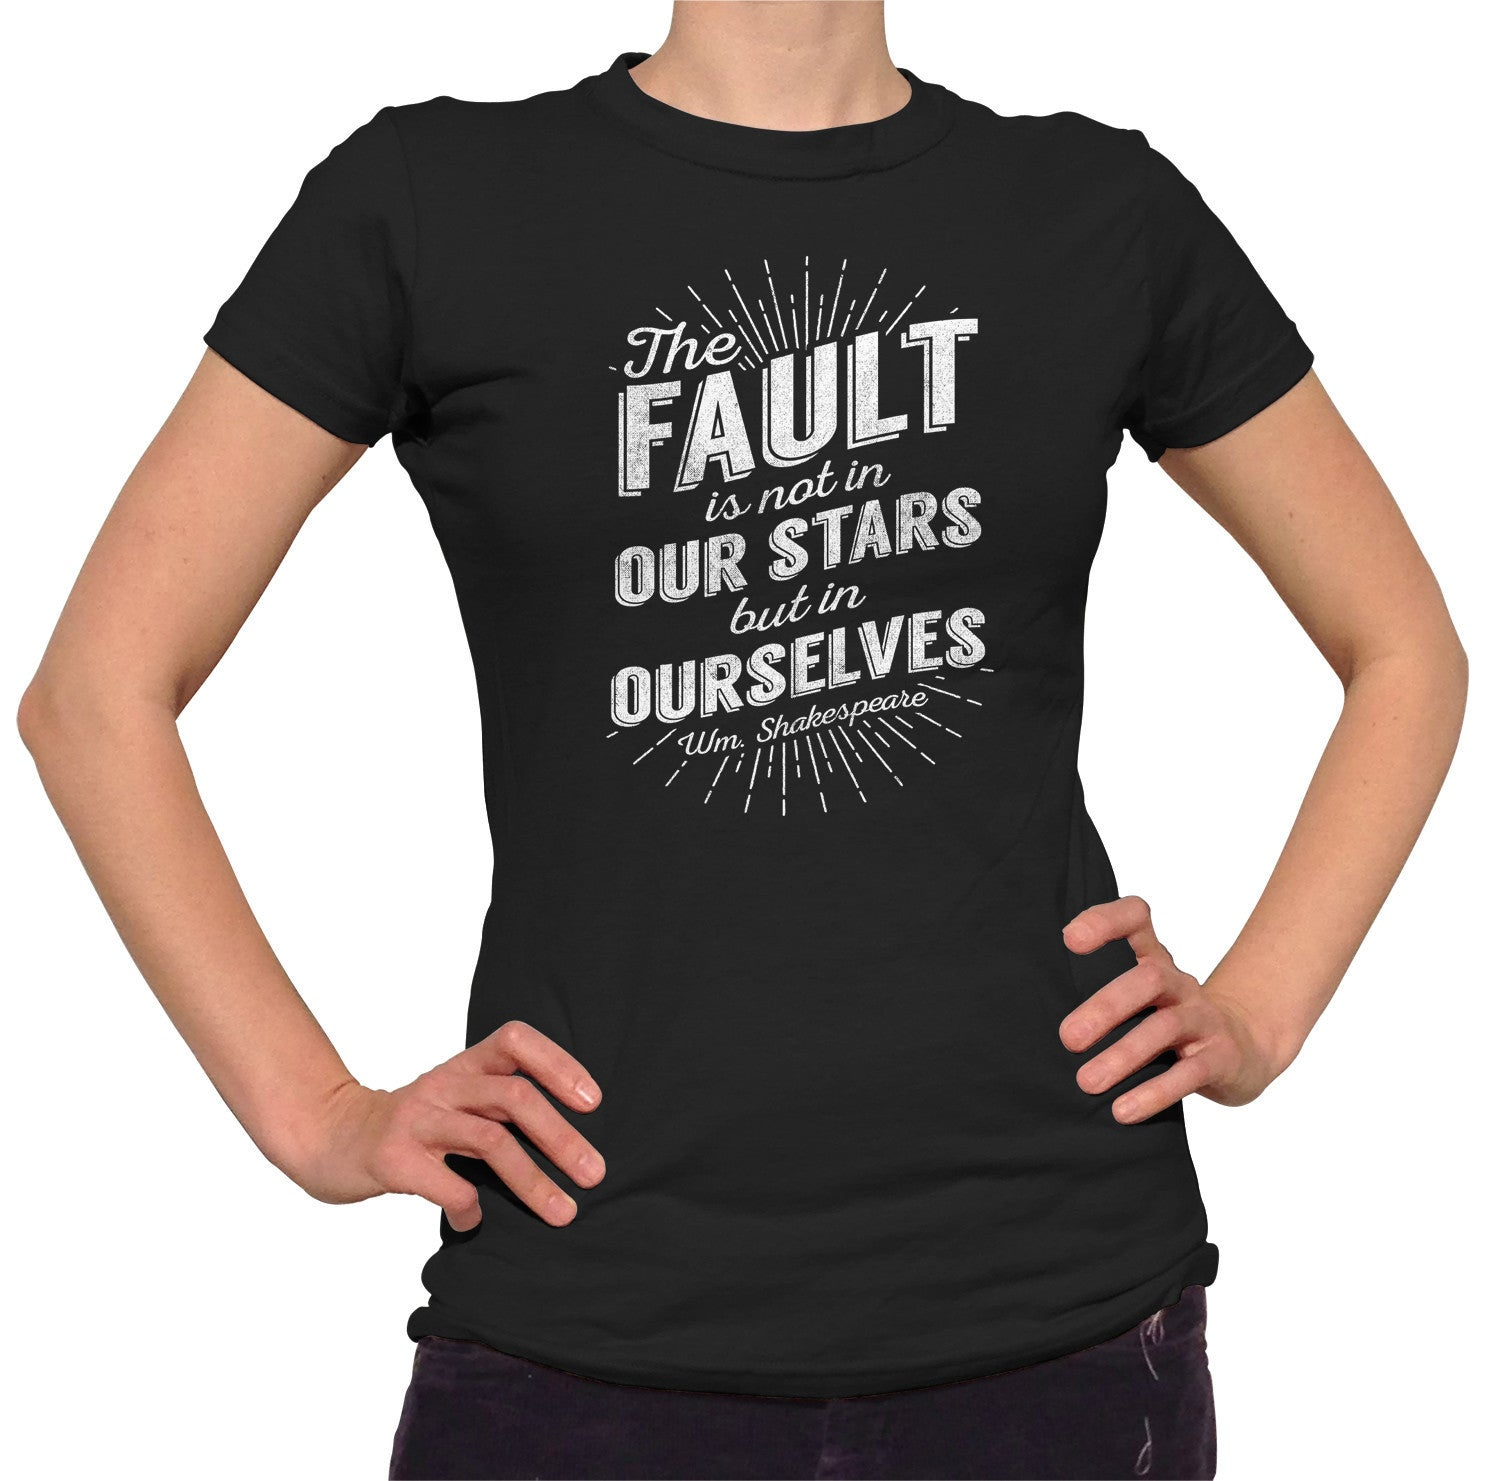 Women's The Fault is Not in Our Stars but in Ourselves T-Shirt